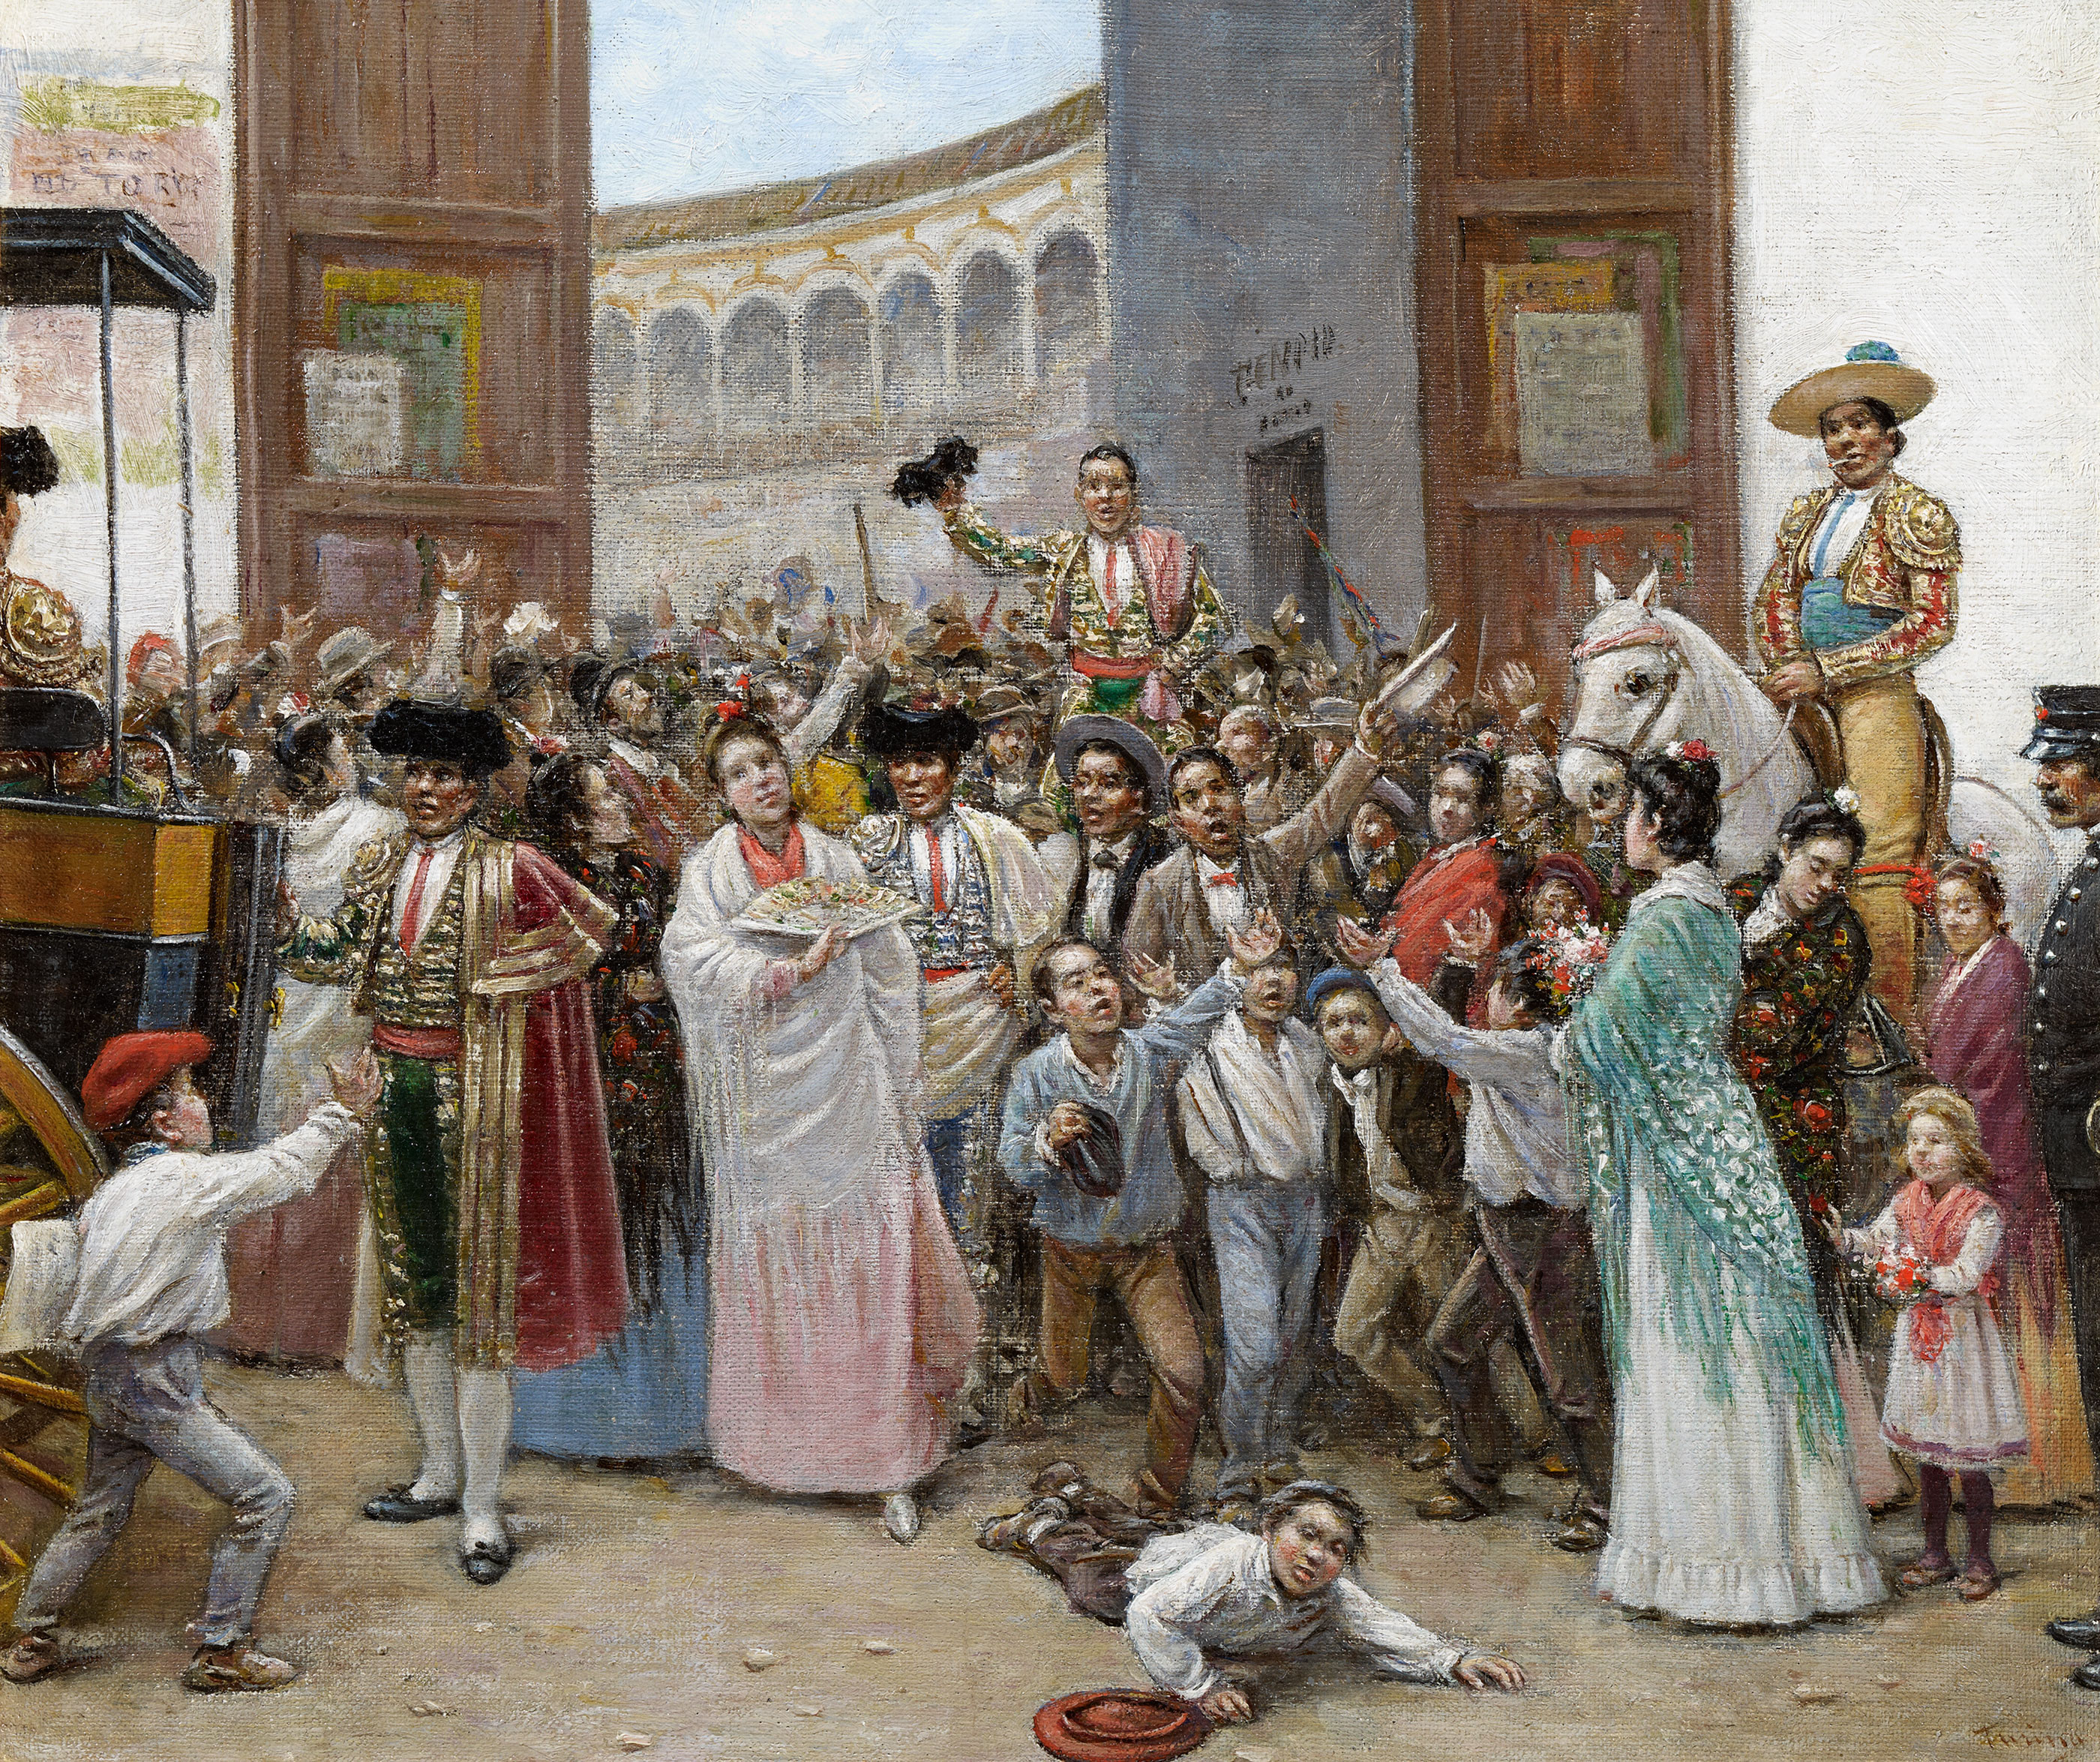 Triumphal Exit from the Maestranza Bullring in Seville